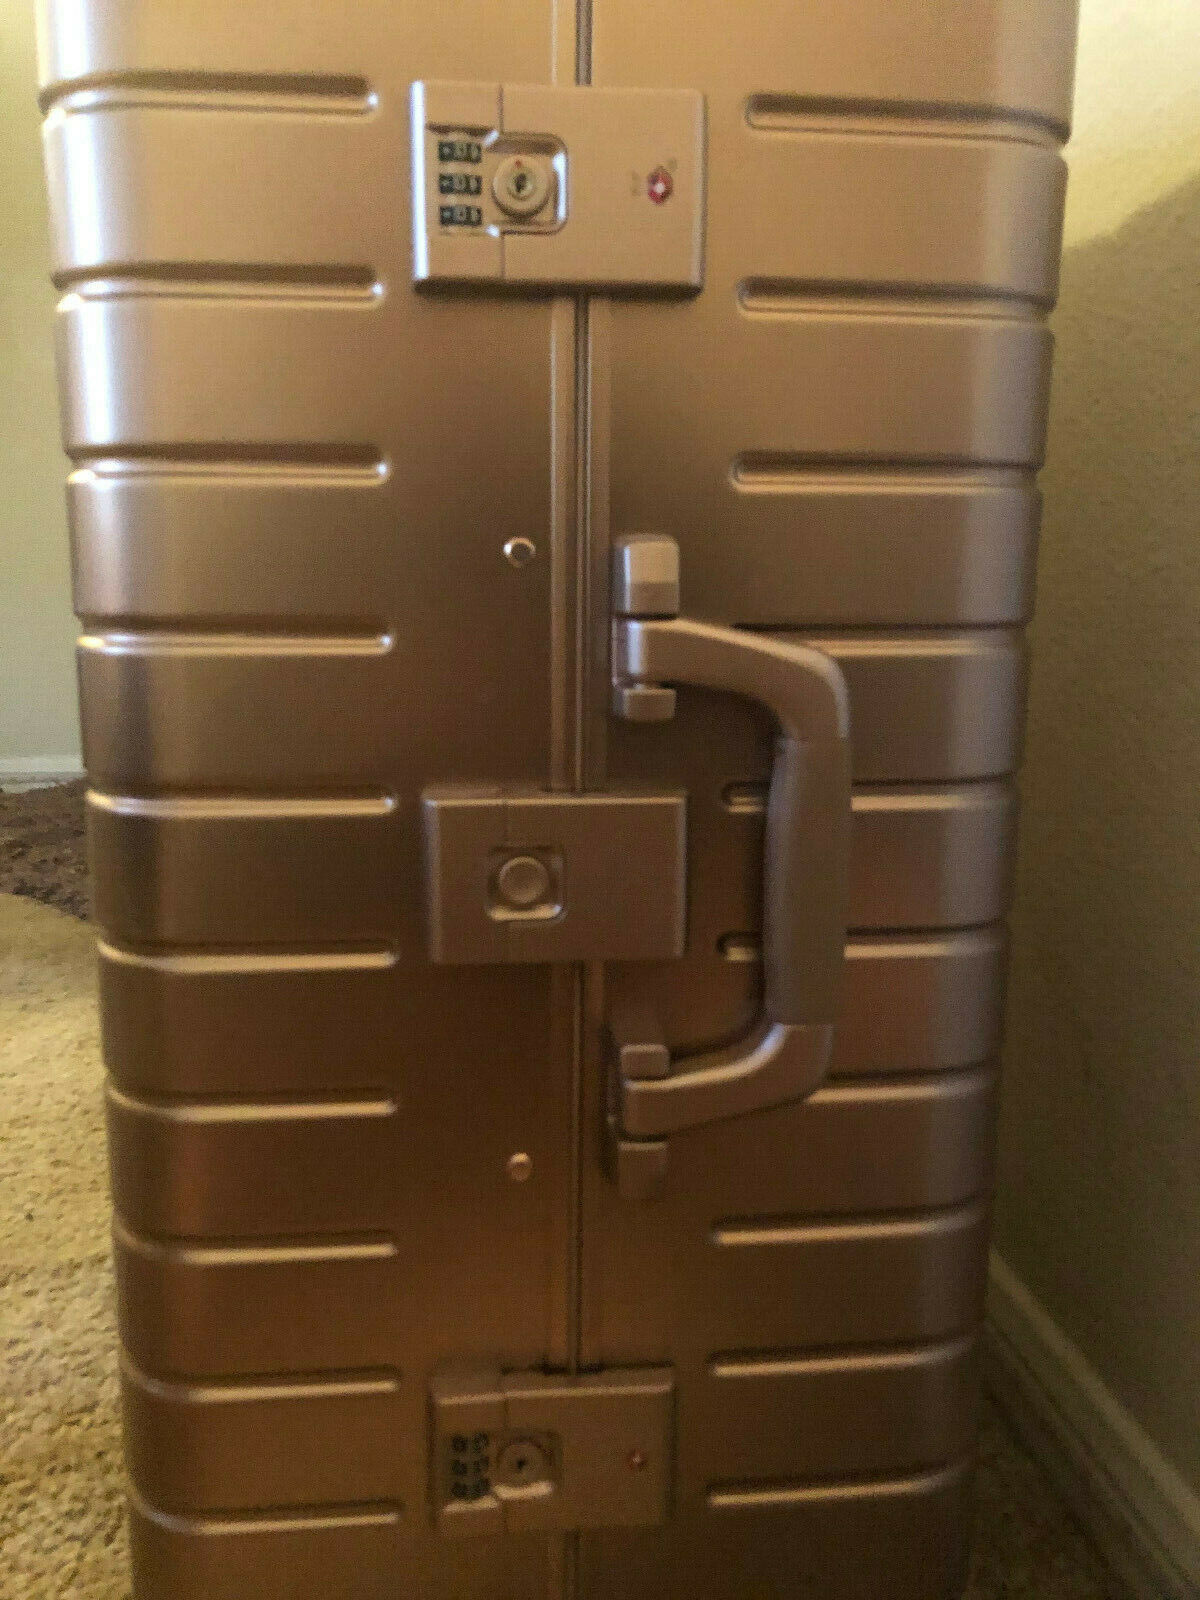 Pre-Owned Away Aluminum Medium Size Luggage In Rose Gold - $450.00